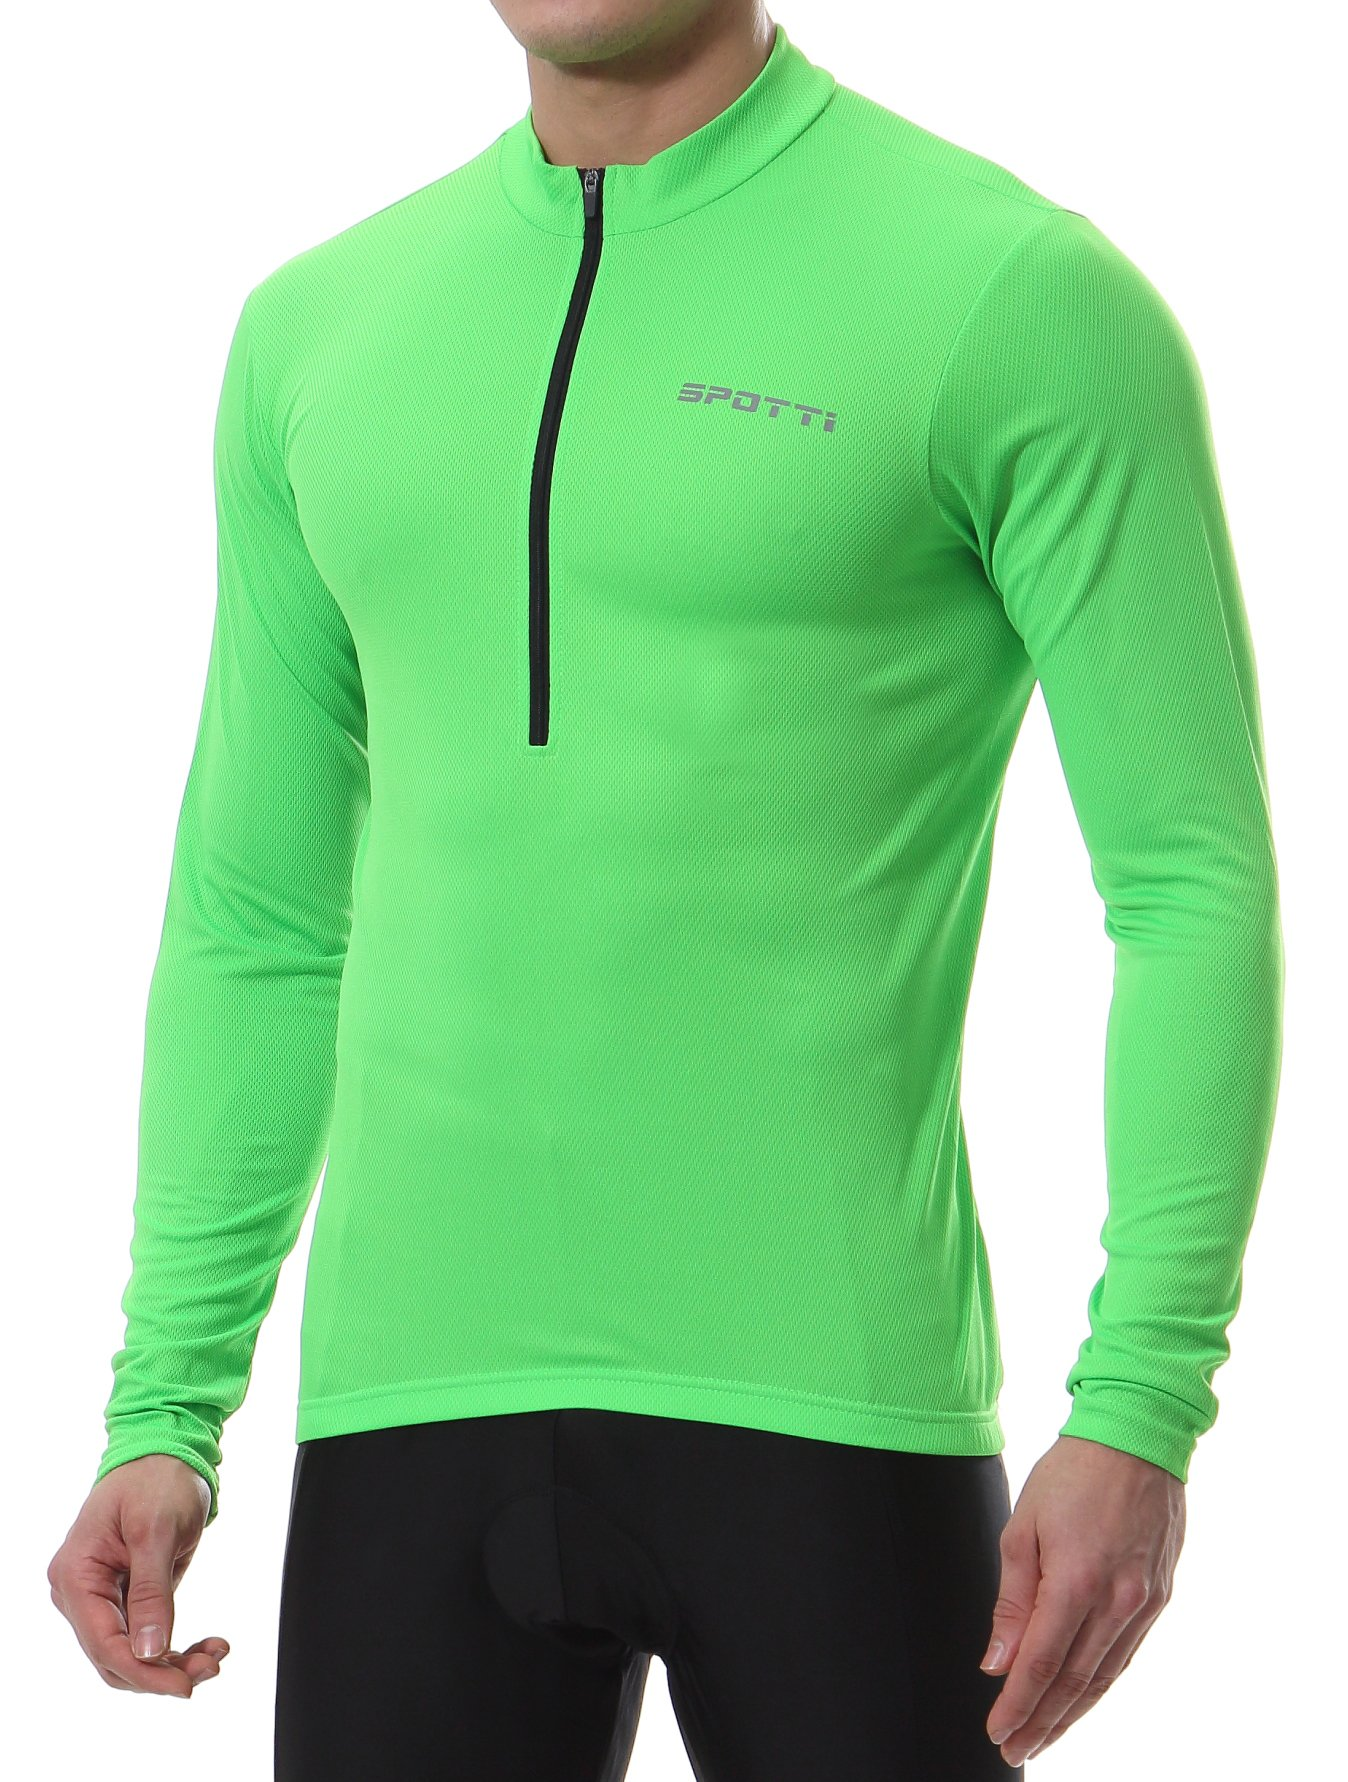 Spotti Men's Long Sleeve Cycling Jersey, Bike Biking Shirt- Breathable and Quick Dry (Chest 36-38 - Small, Green)